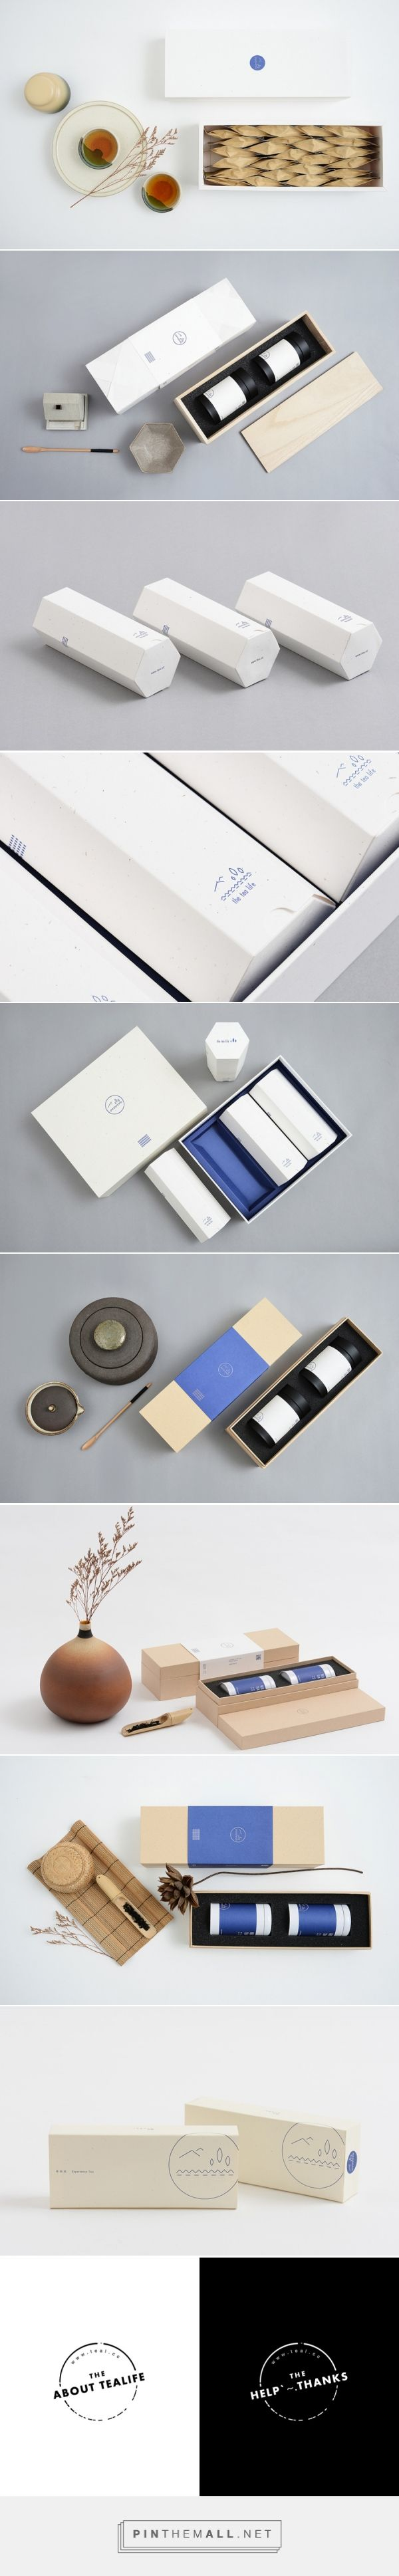 茶中生设 the tea life|包装|平面|王美福 - 原创设计作品 - 站酷 (ZCOOL) curated by Packaging Diva PD. The tea life packaging.